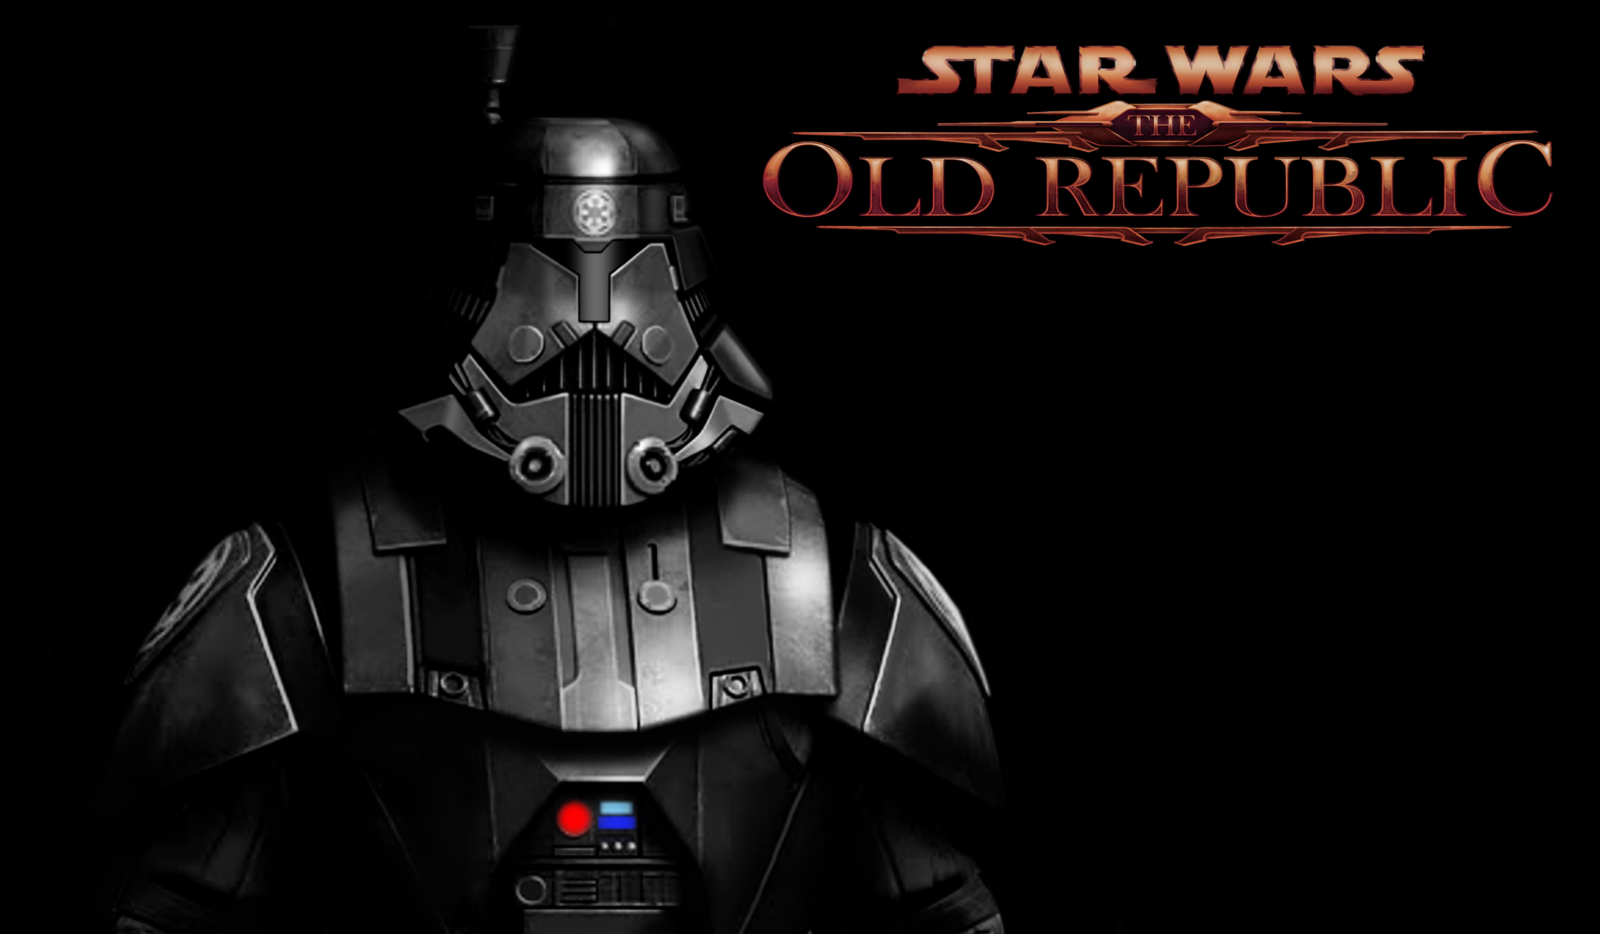 THE OLD REPUBLIC WALLPAPER 4 by zardis1965 1600x934